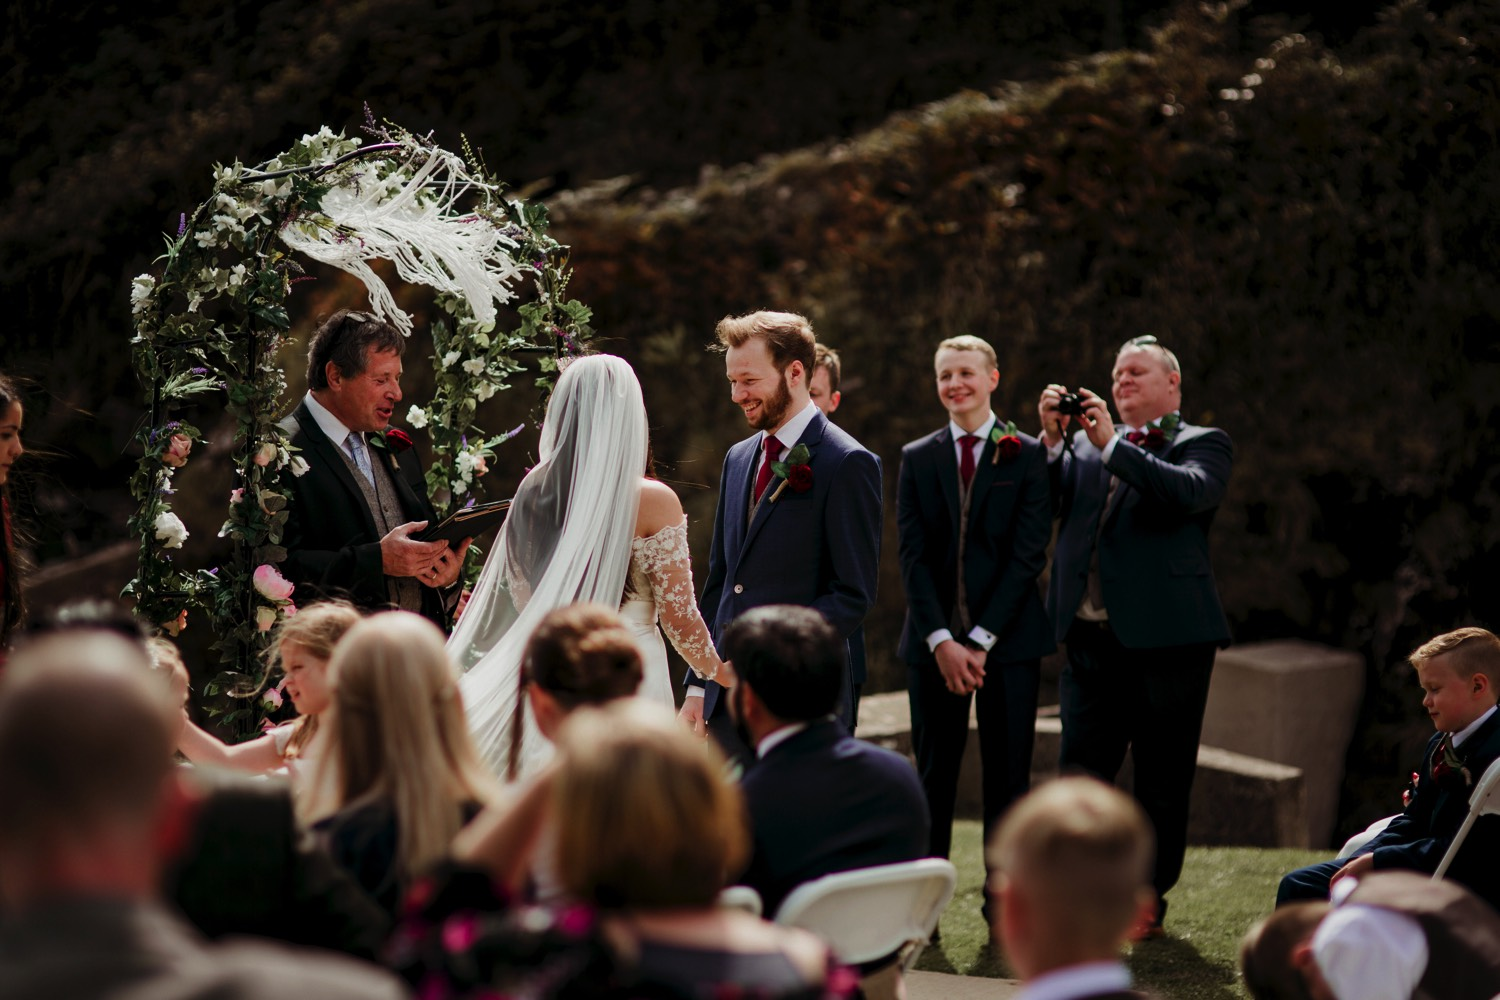 Waterwynch House wedding Tenby KA26.jpg